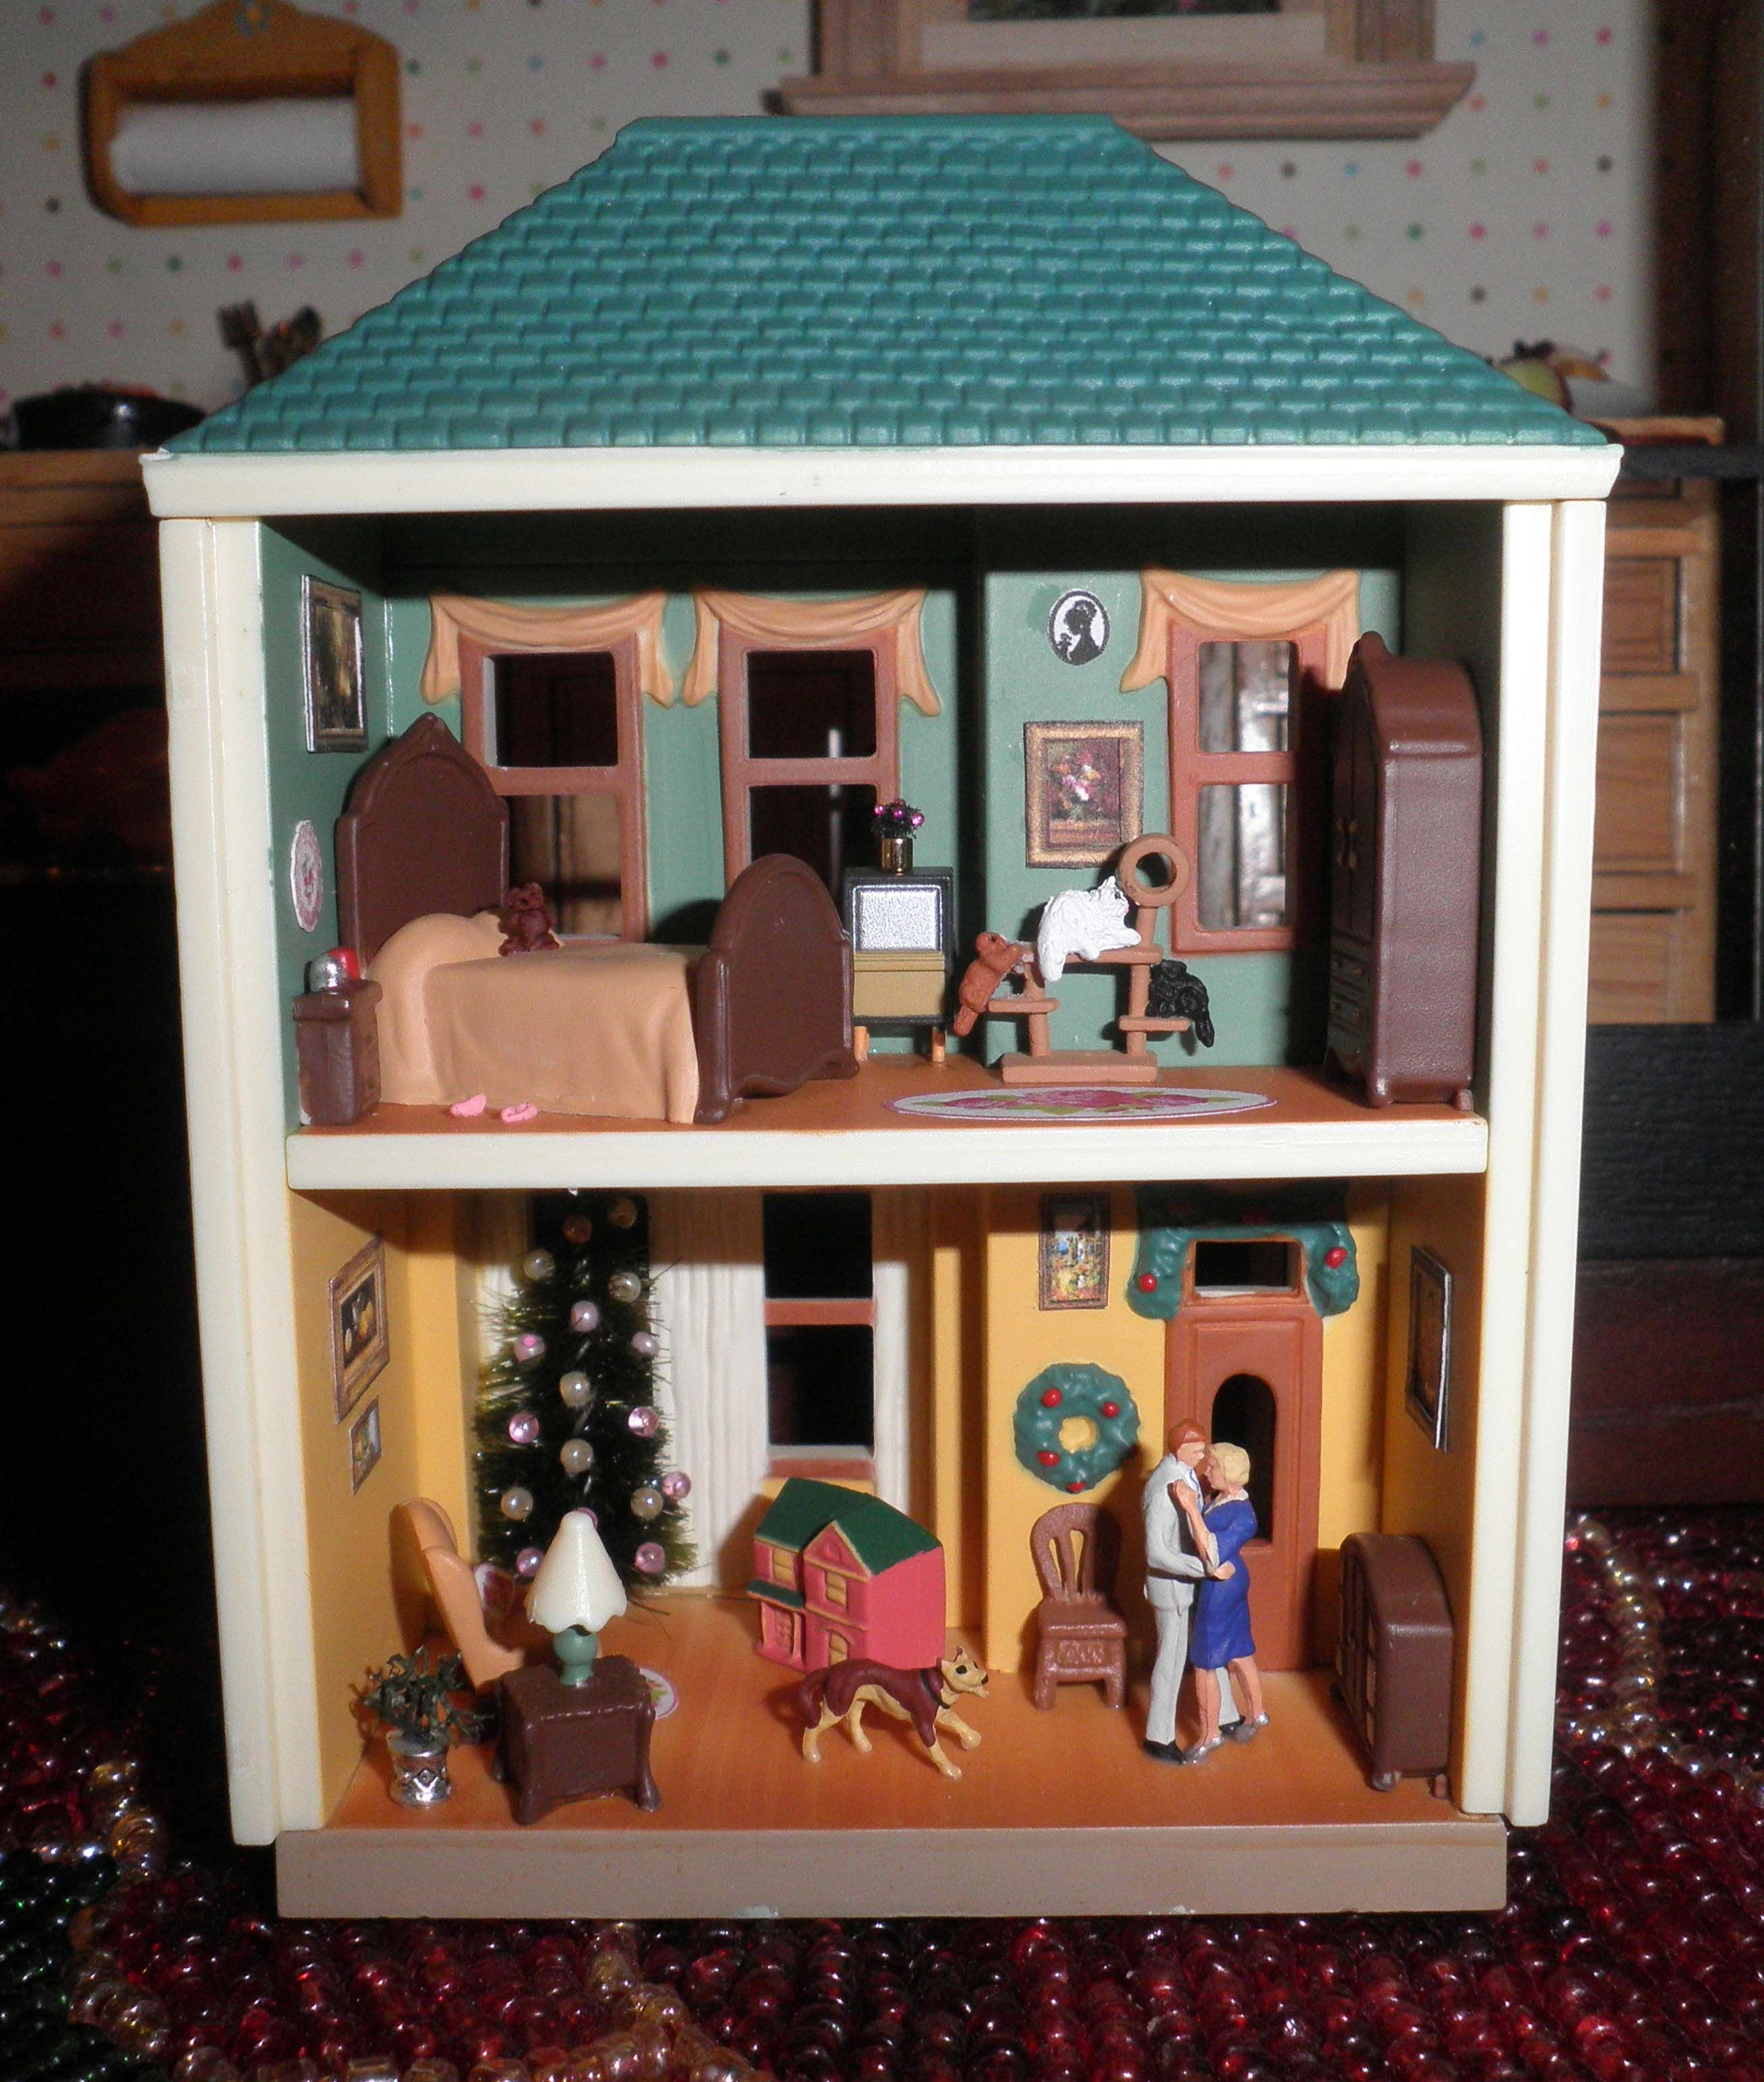 A Hallmark Ornament Upcycled Into A 1144 Scale Dollhouse For